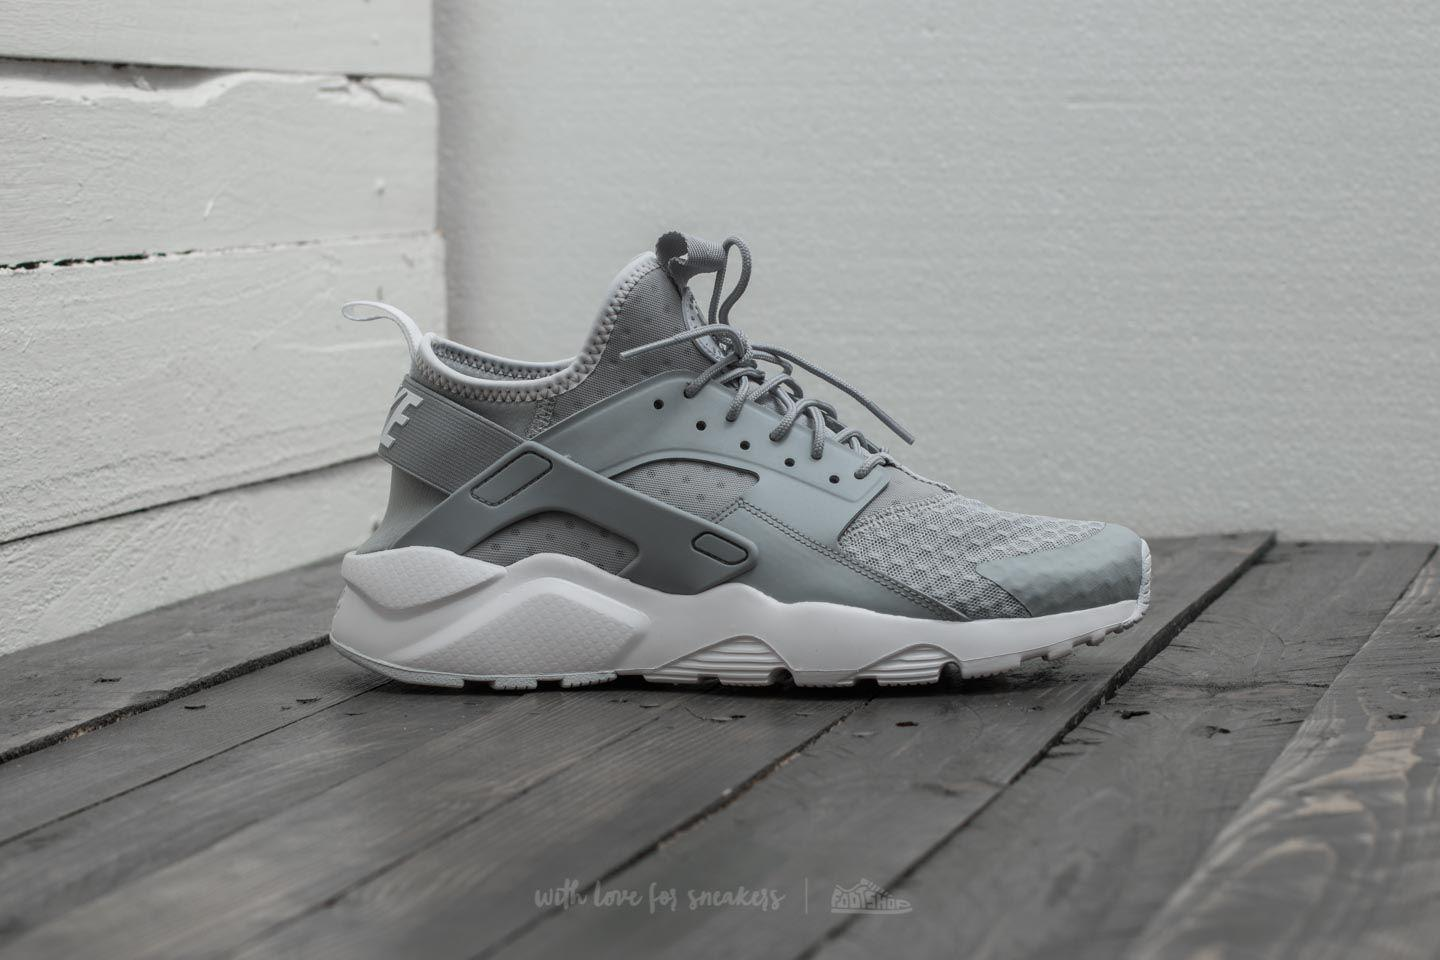 d8609949a73a ... best price lyst nike air huarache run ultra wolf grey pale grey white  in gray 775a2